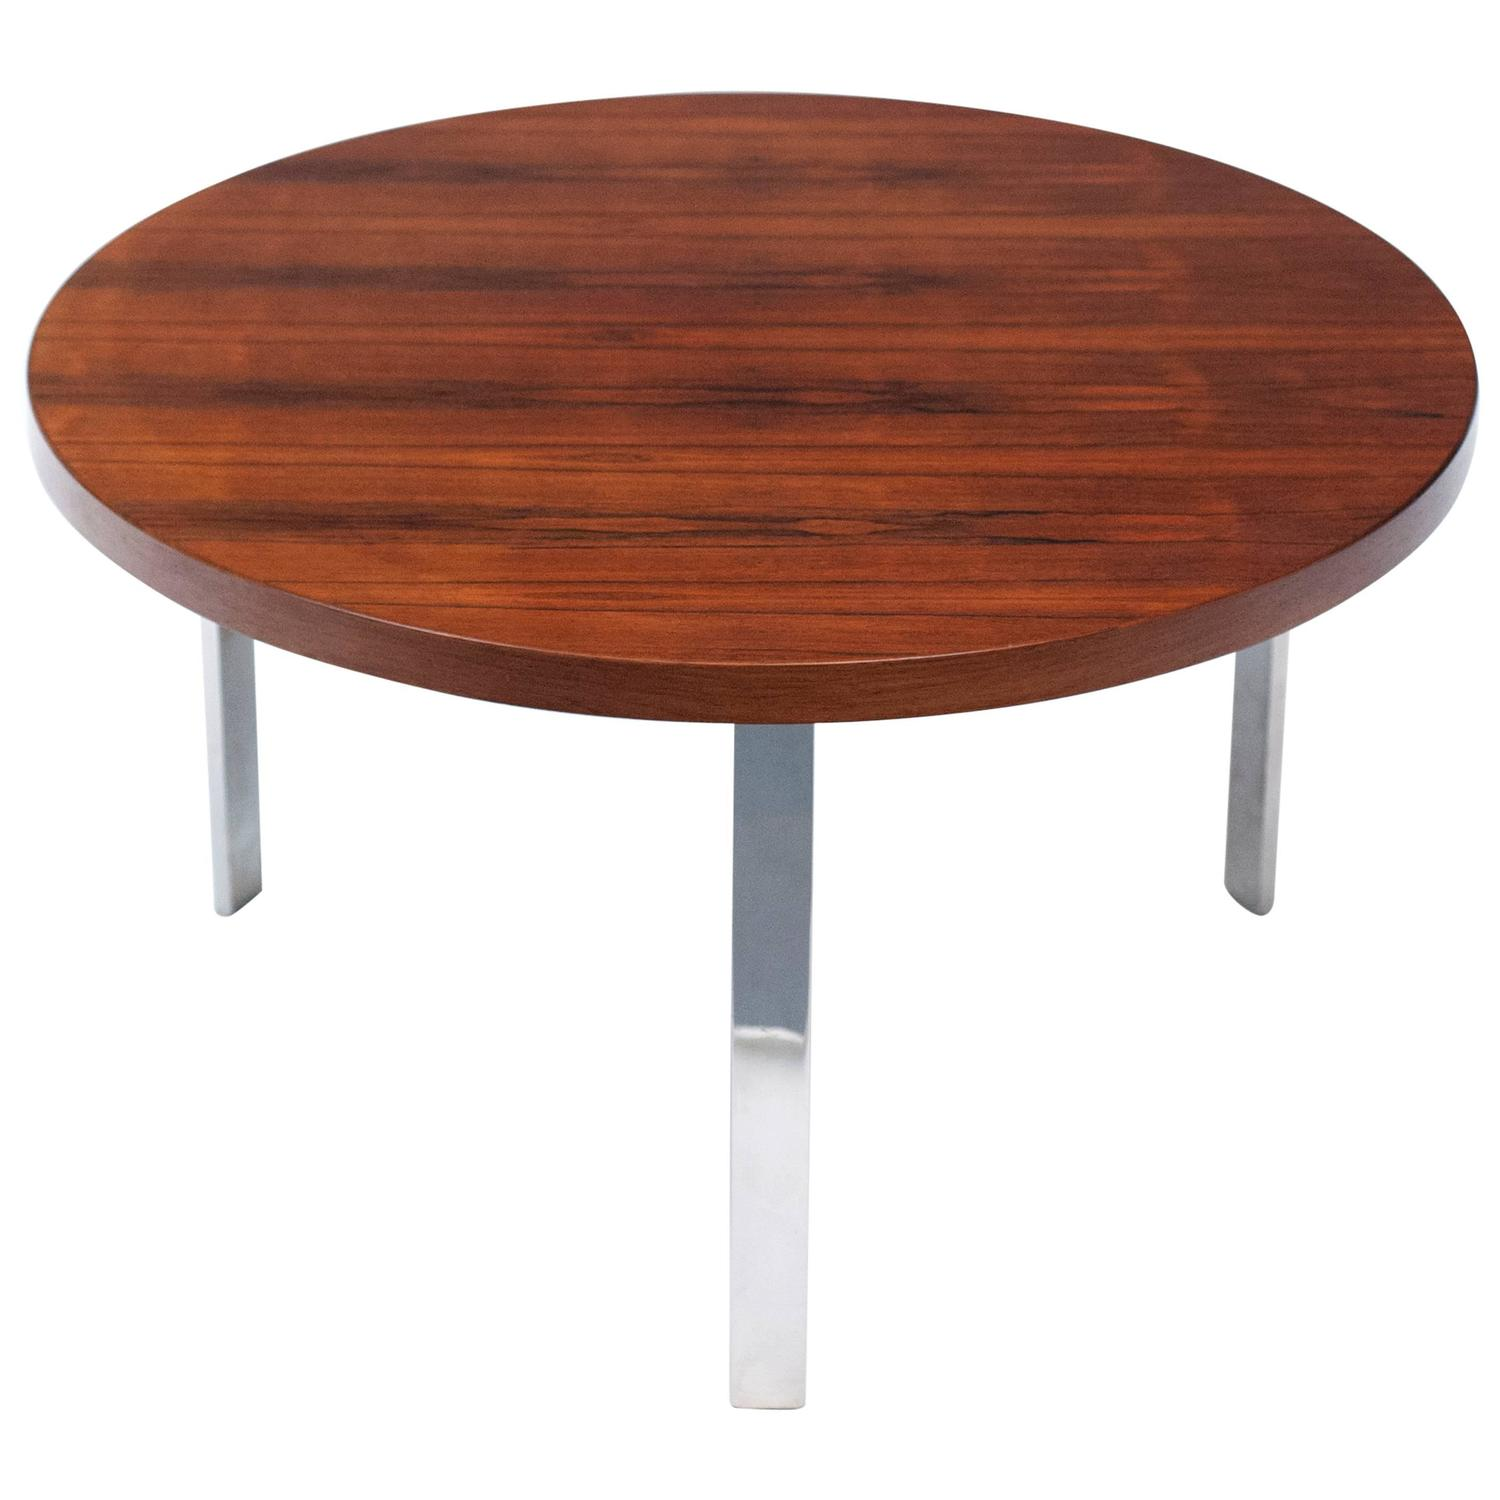 Danish Round Modern Rosewood And Chrome Coffee Table For Sale At 1stdibs